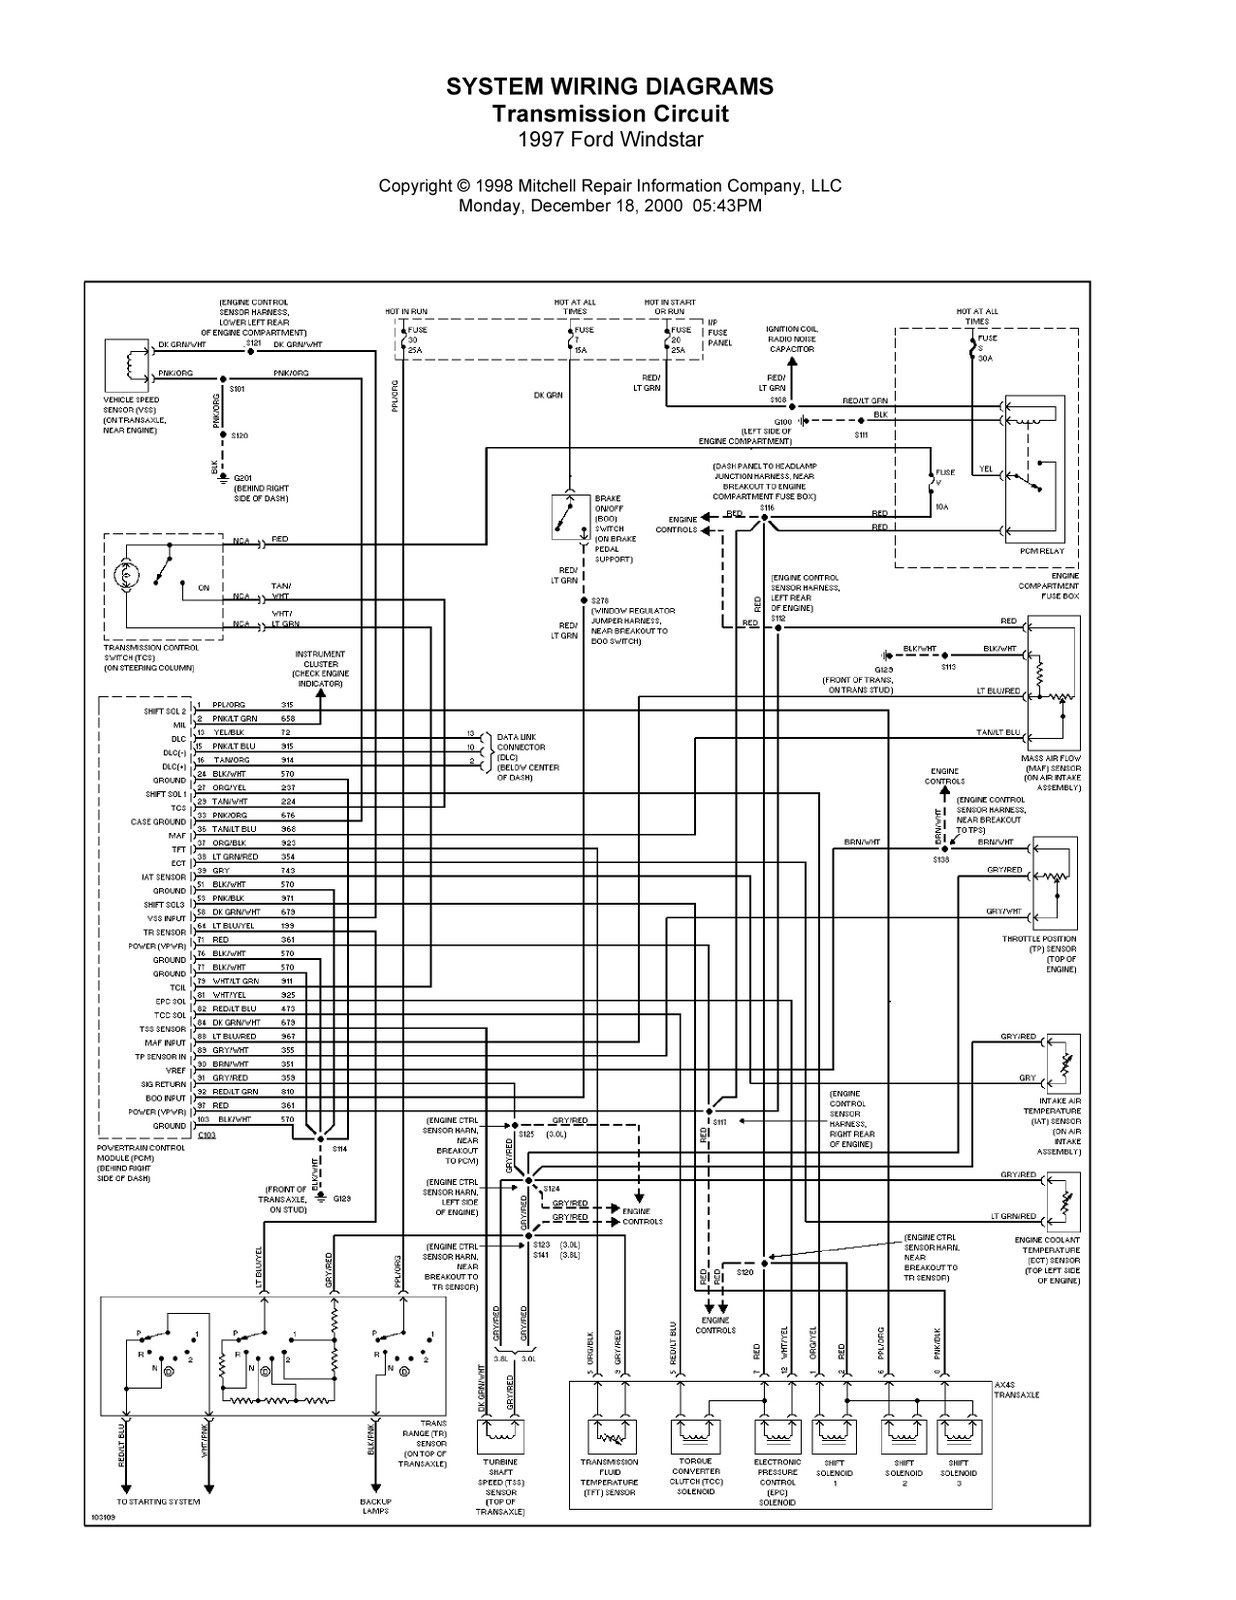 Volvo S60 Wiring Diagram Car Image Idea